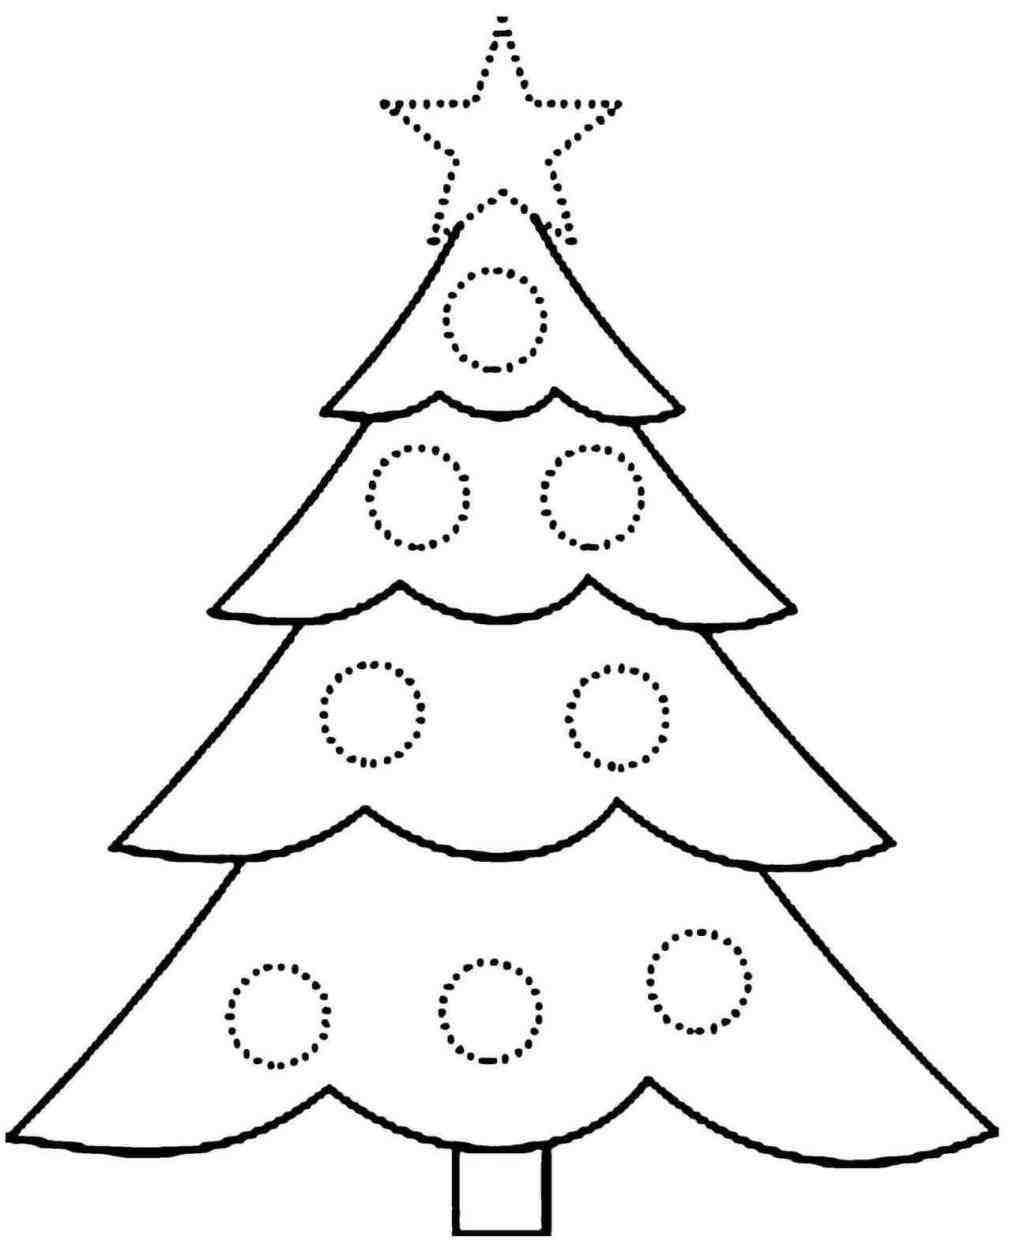 how to draw pine trees step by step pine trees in pencil drawing at getdrawings free download to step how step trees pine draw by